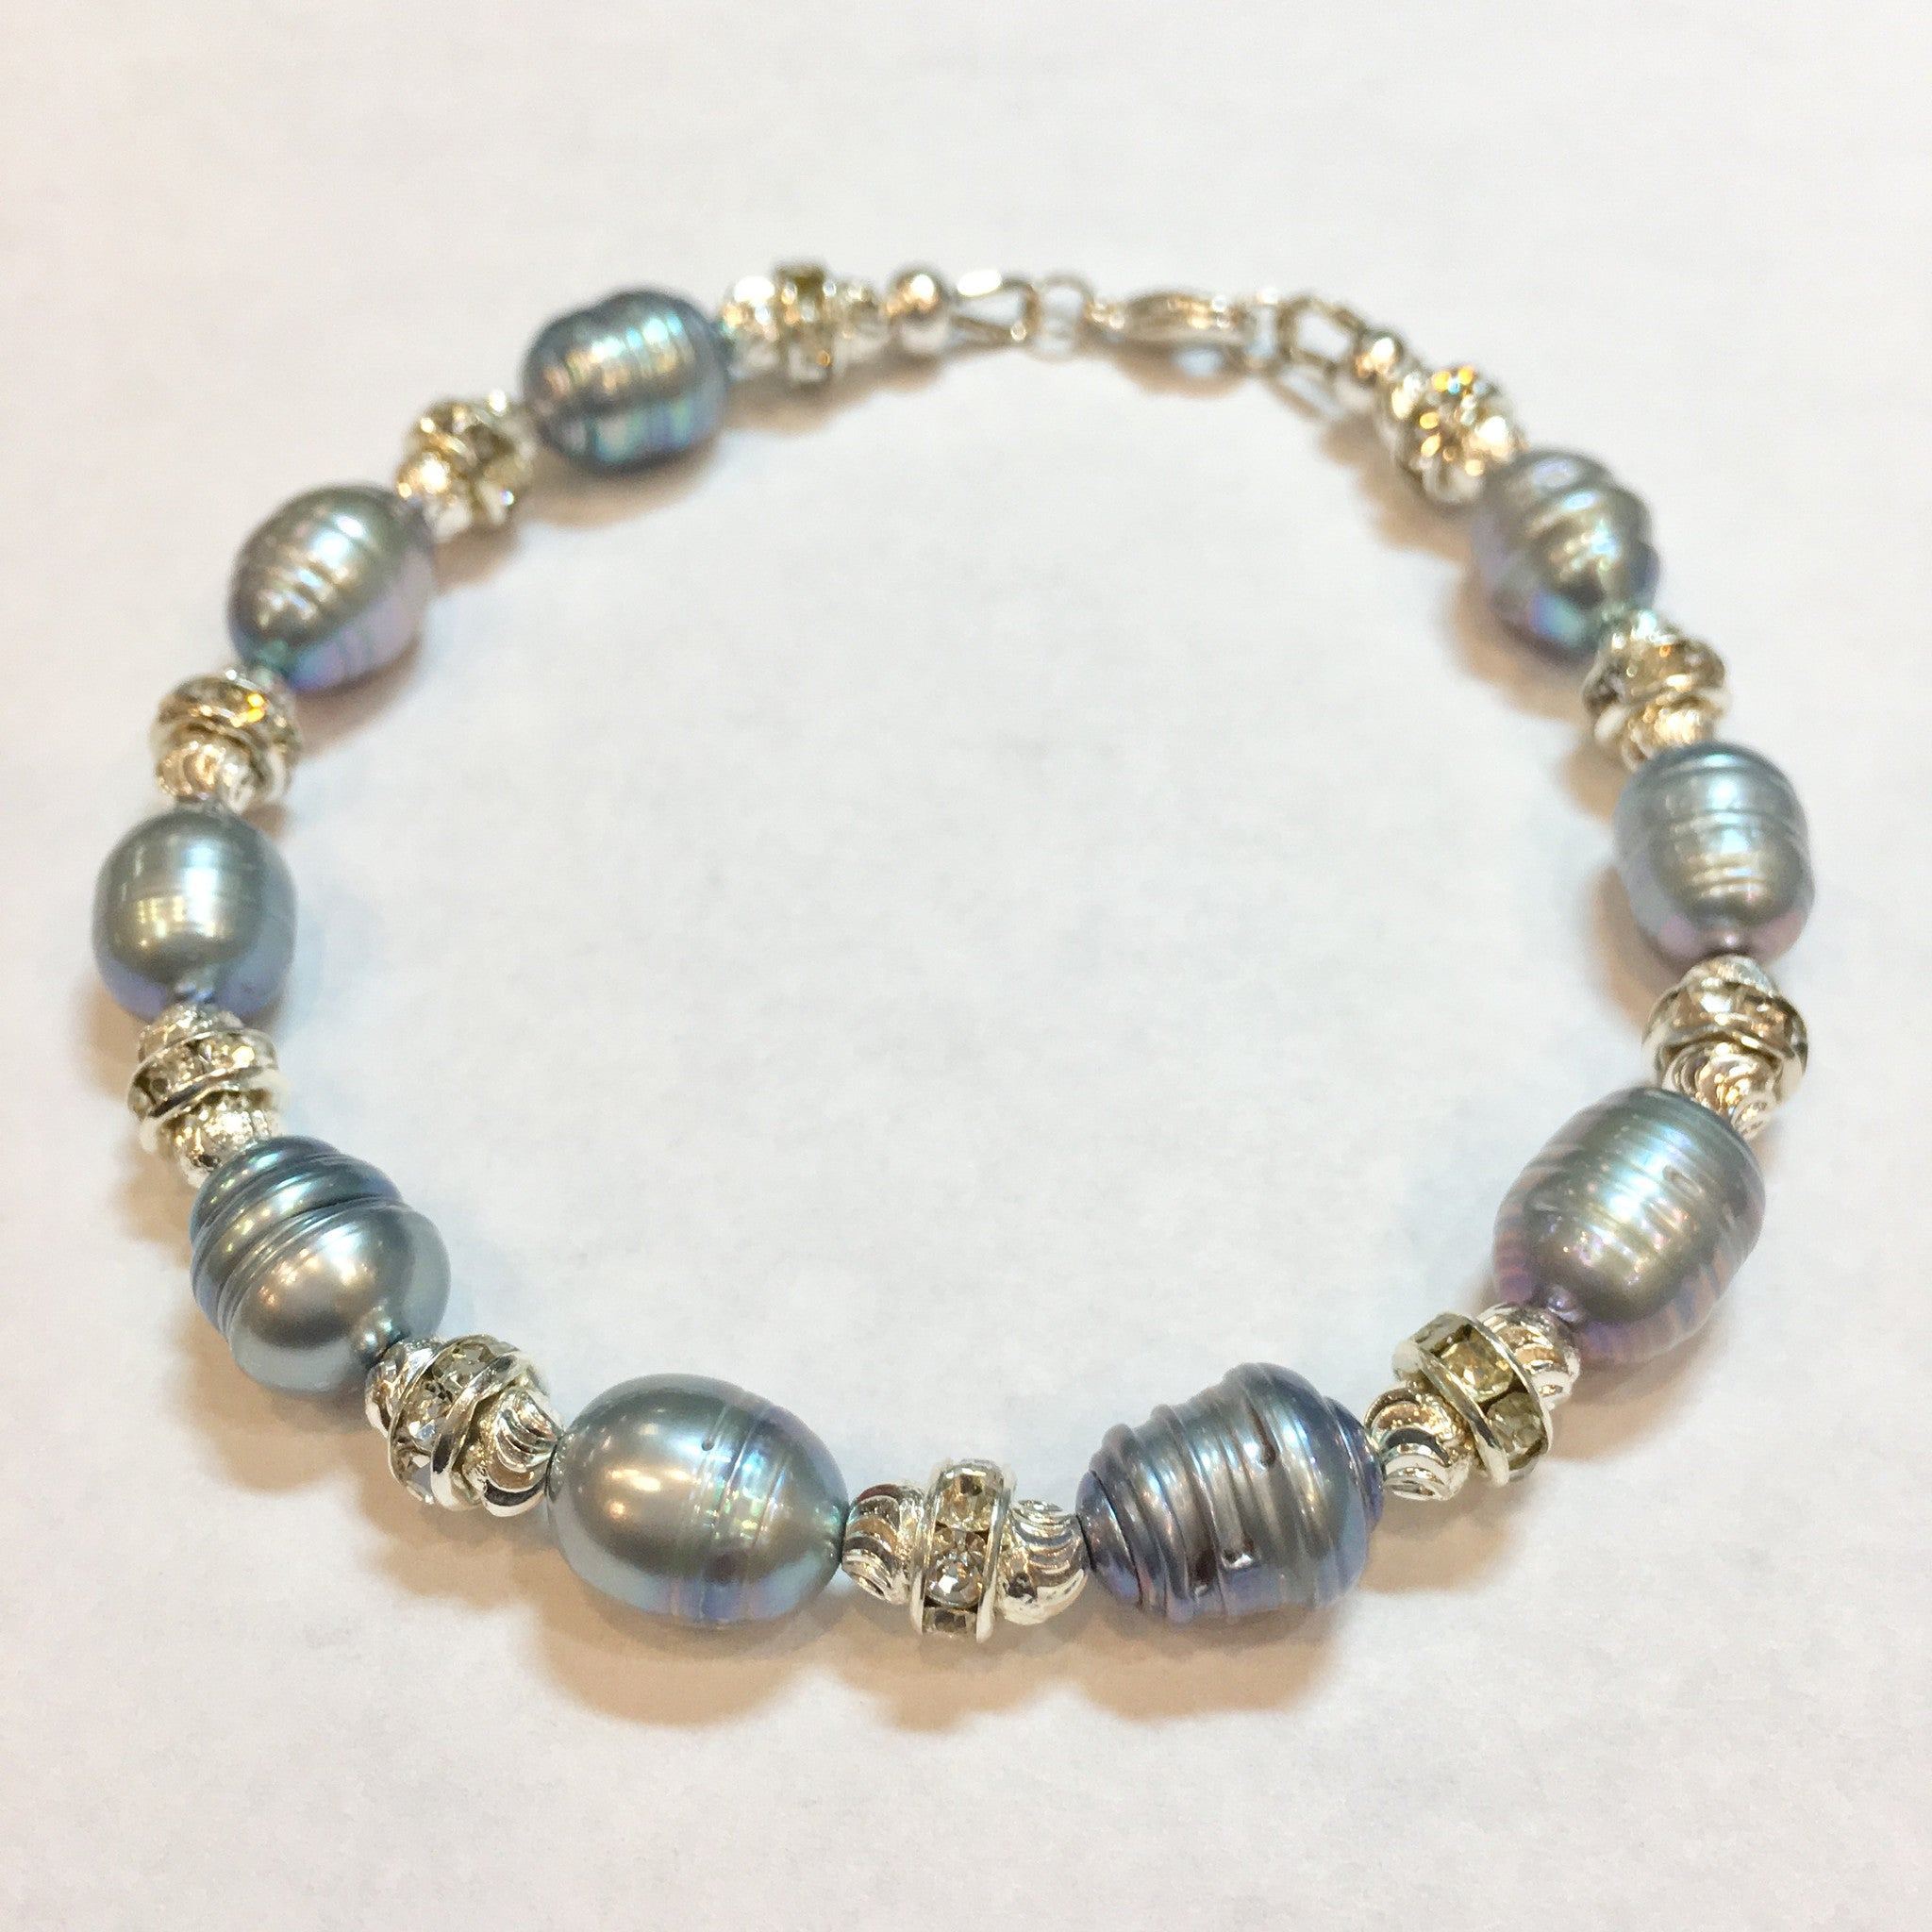 Fresh Water Pearl and Swarovski Bracelet - Real Chic Boutique  - 3